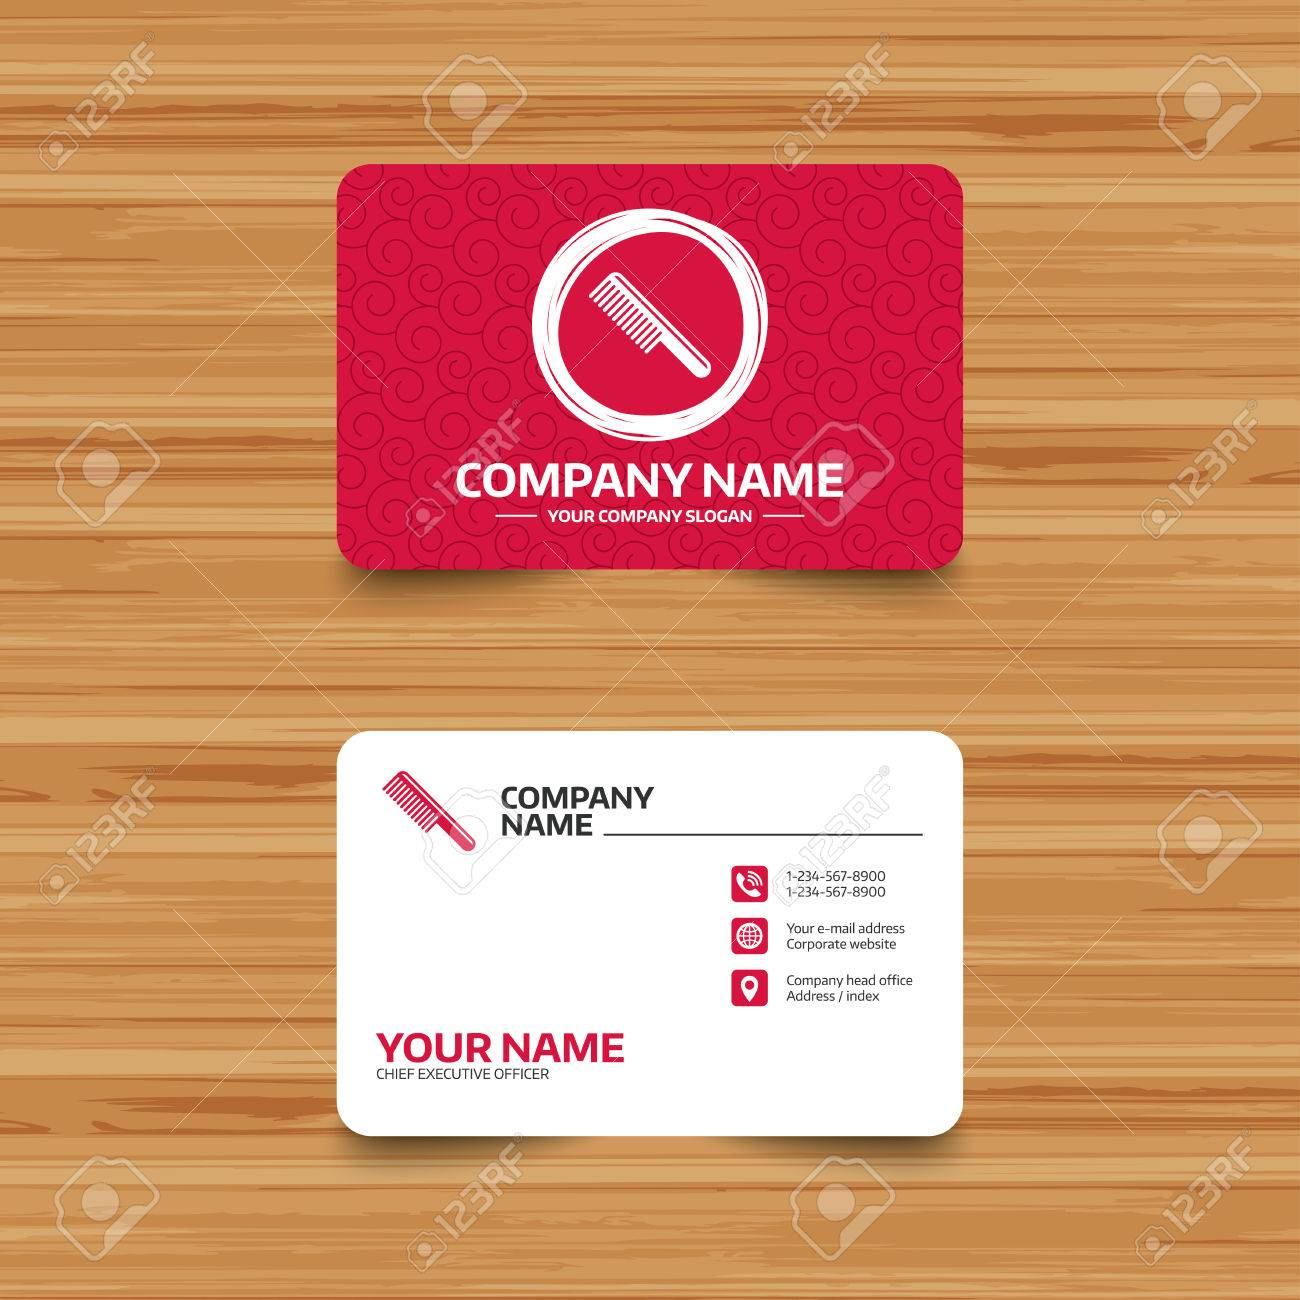 Business card template with texture comb hair sign icon barber business card template with texture comb hair sign icon barber symbol phone colourmoves